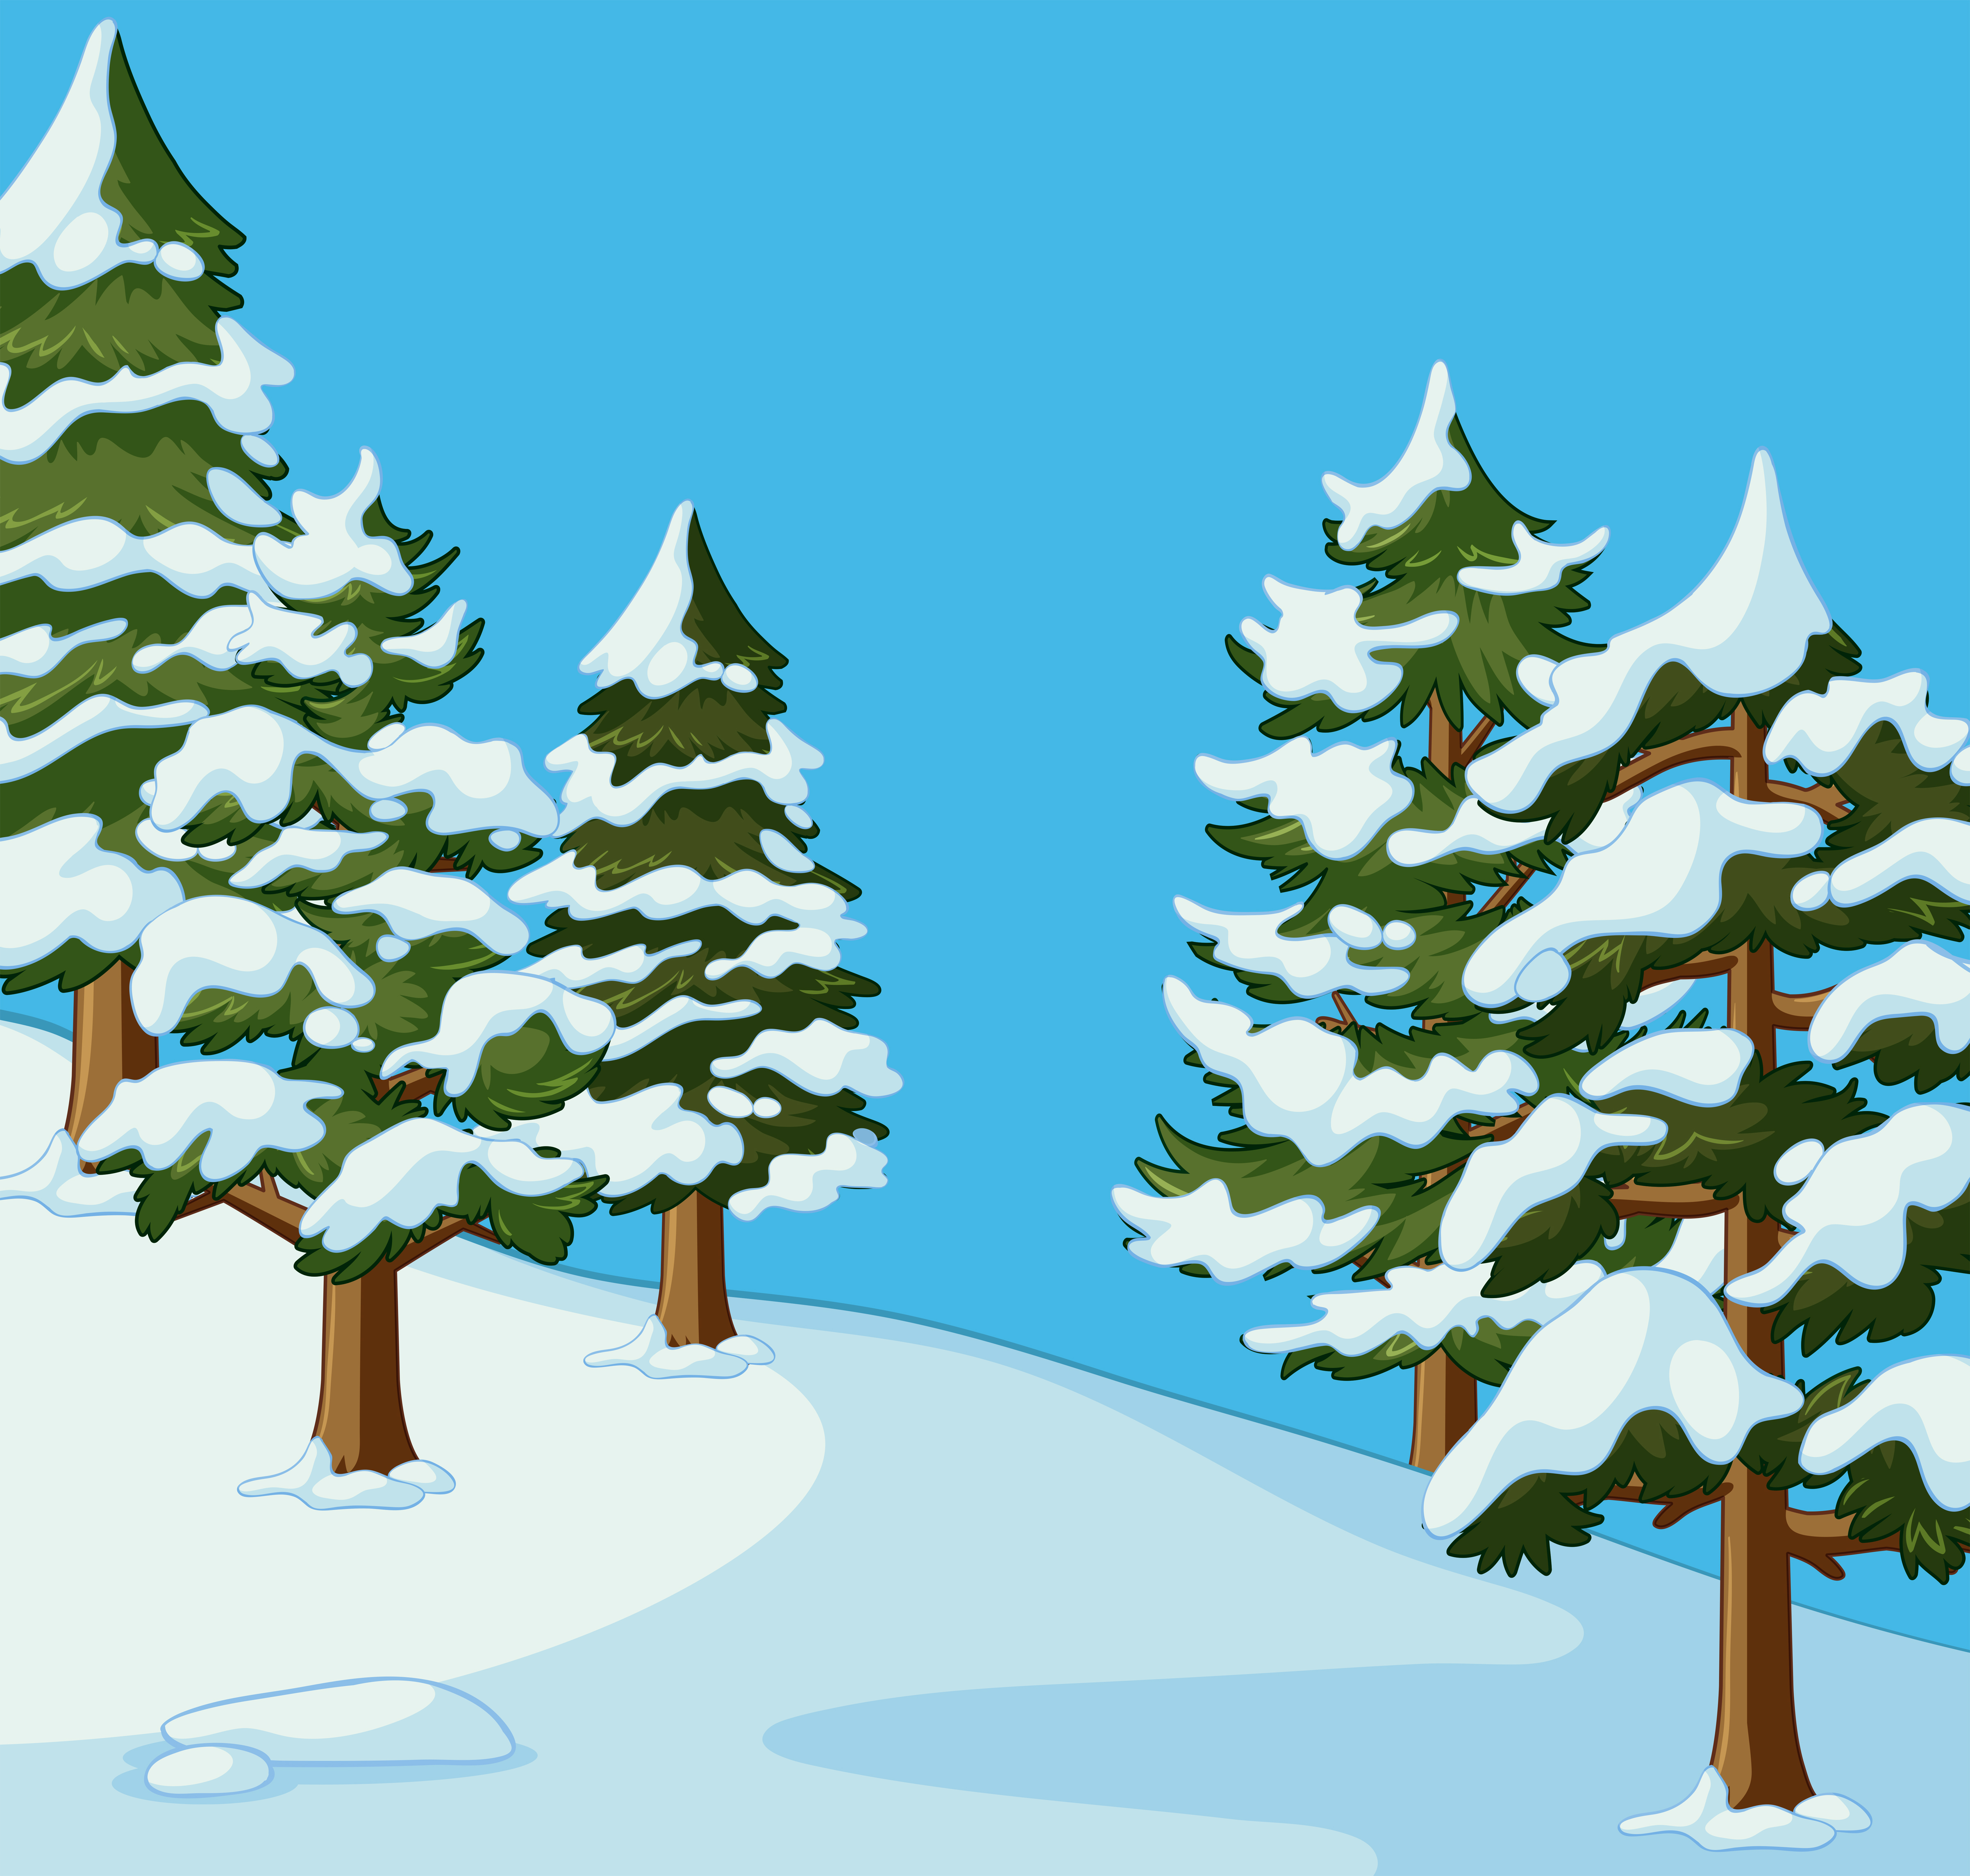 Pine trees covered with snow - Download Free Vectors ...